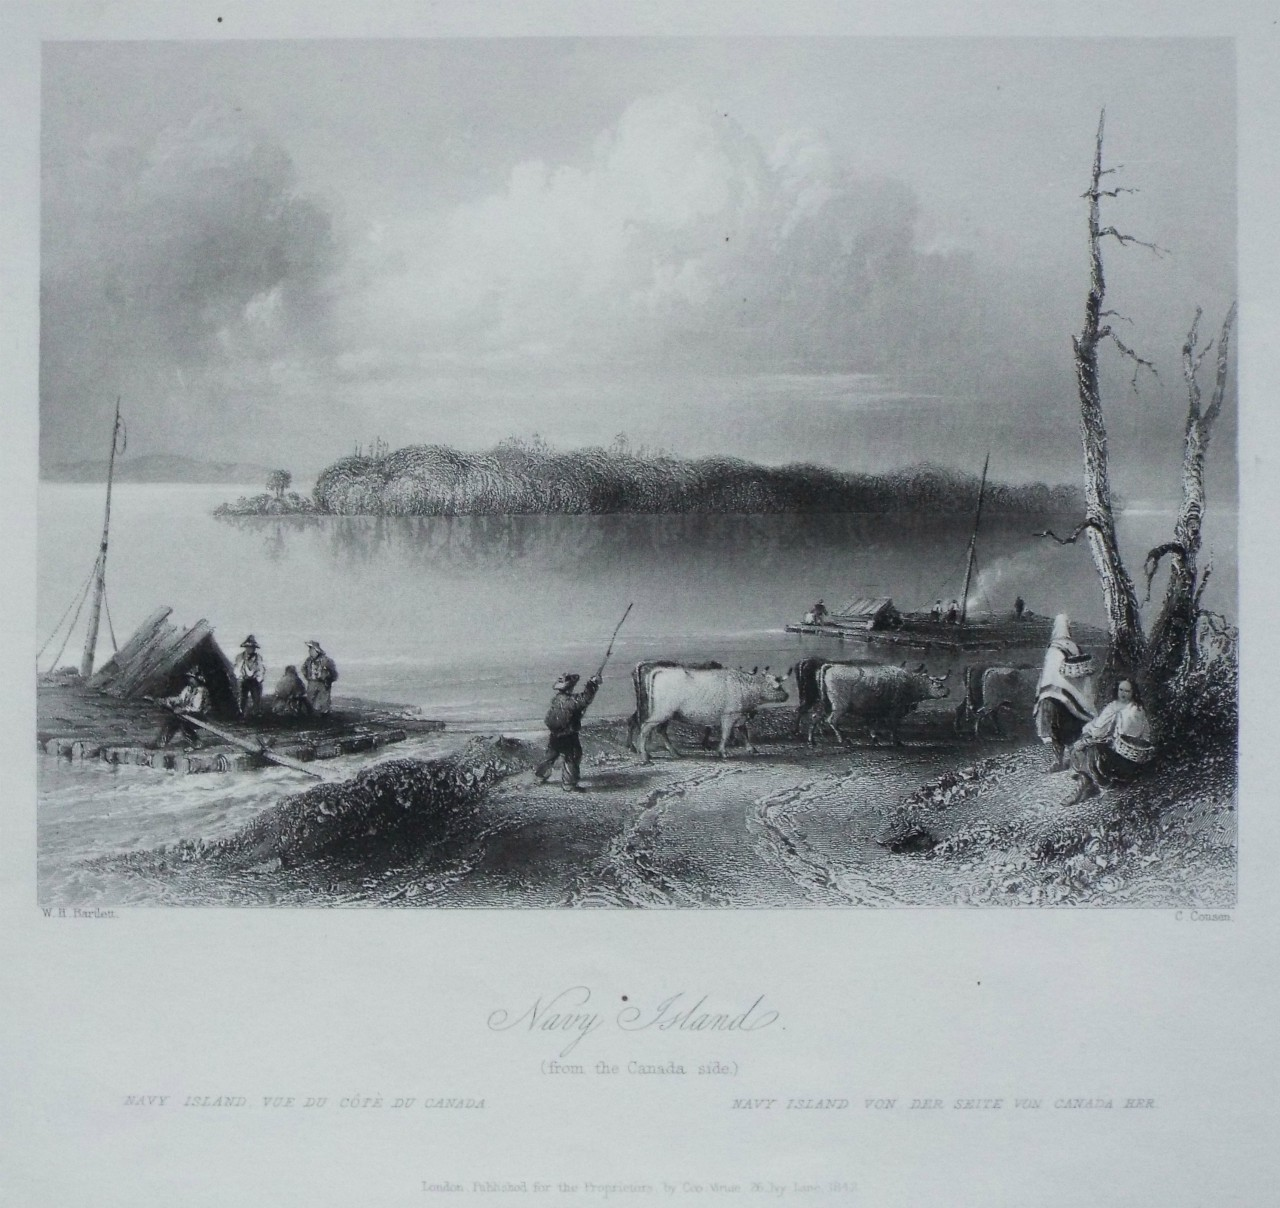 Print - Navy Island. (from the Canada side.) - Cousen